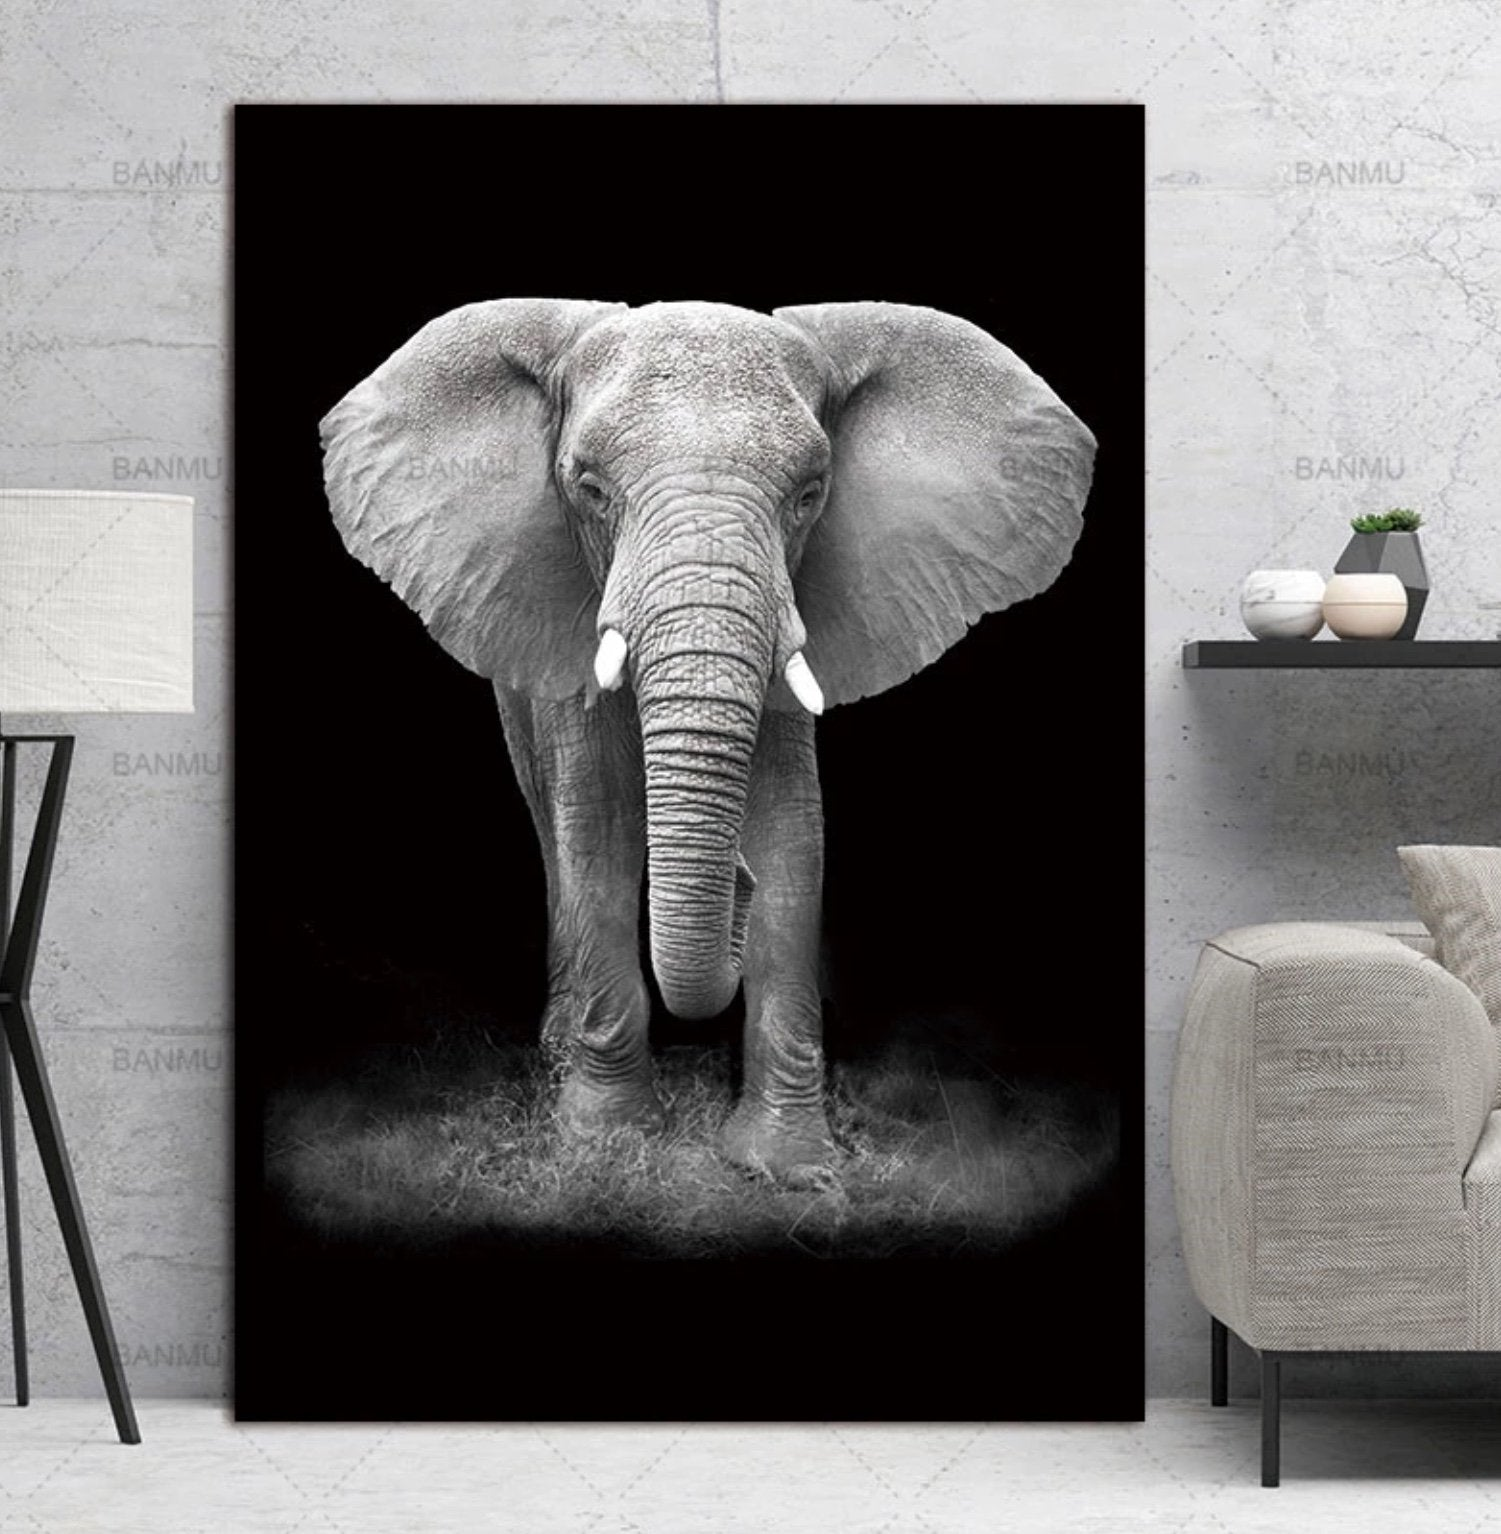 30x40cm / Elephant Monochrome Animal Collection - Pebble & Leaf HomeArt